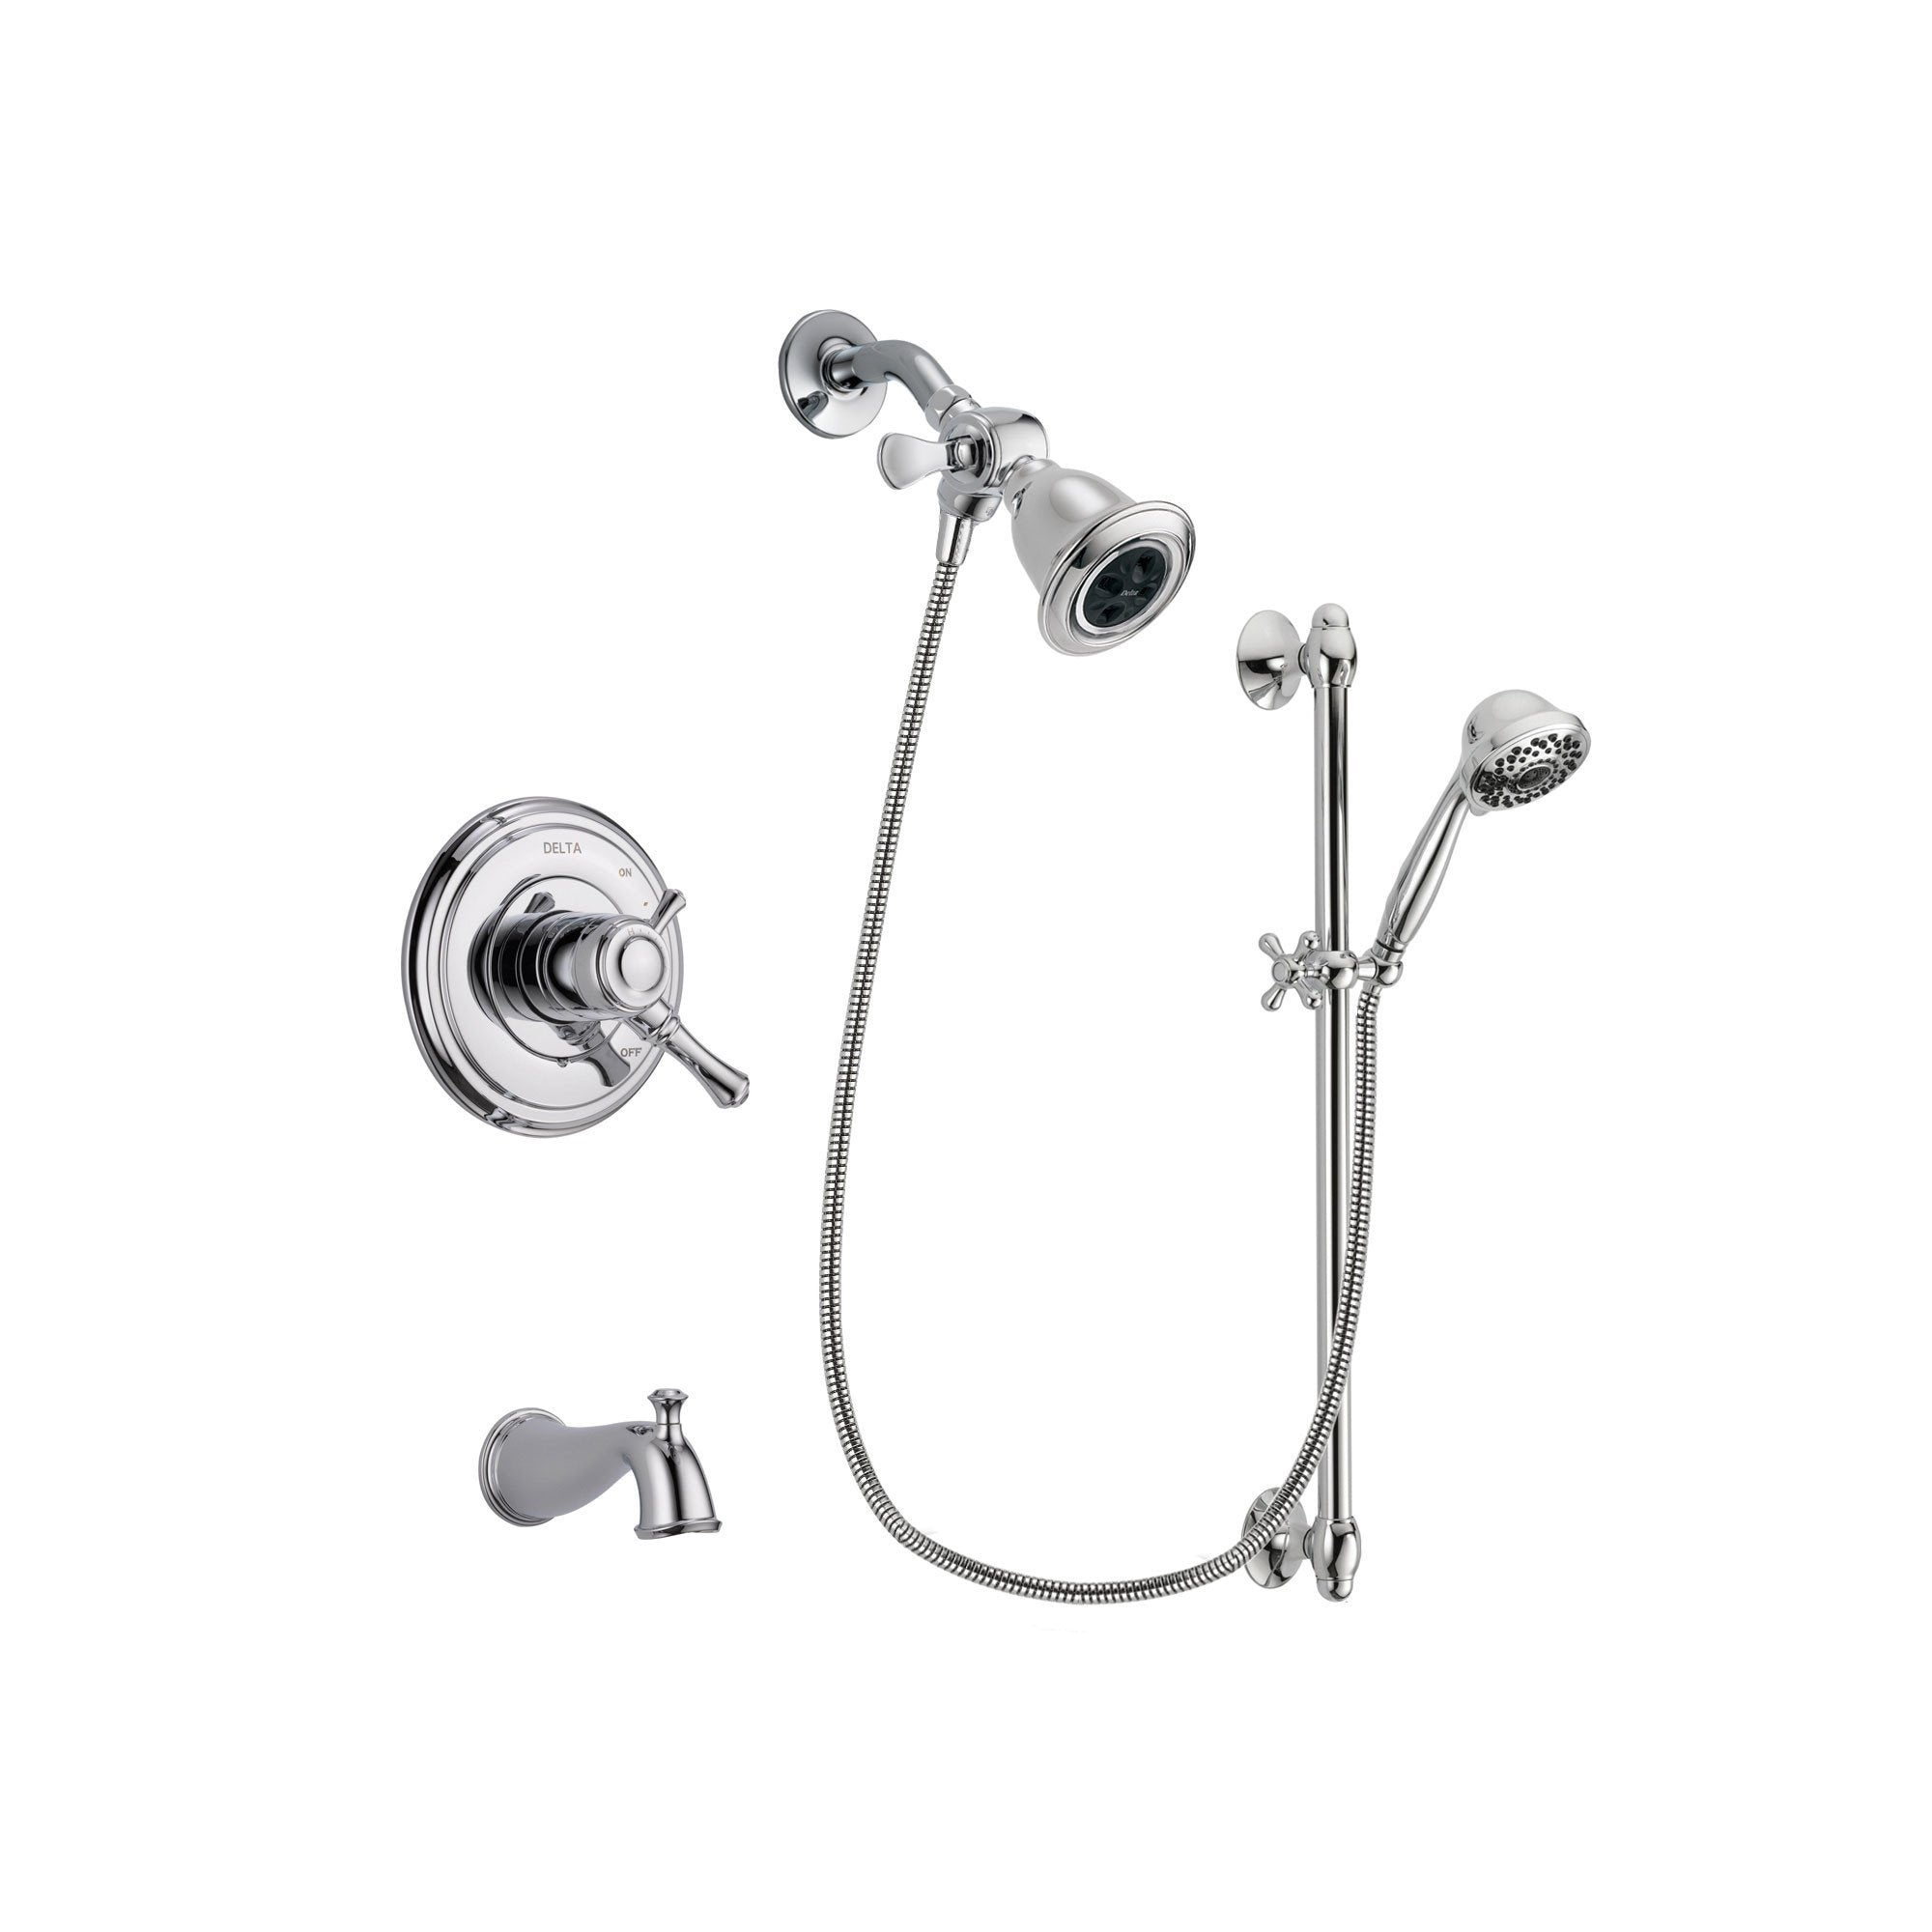 Delta Cassidy Chrome Tub and Shower Faucet System with Hand Shower DSP0627V